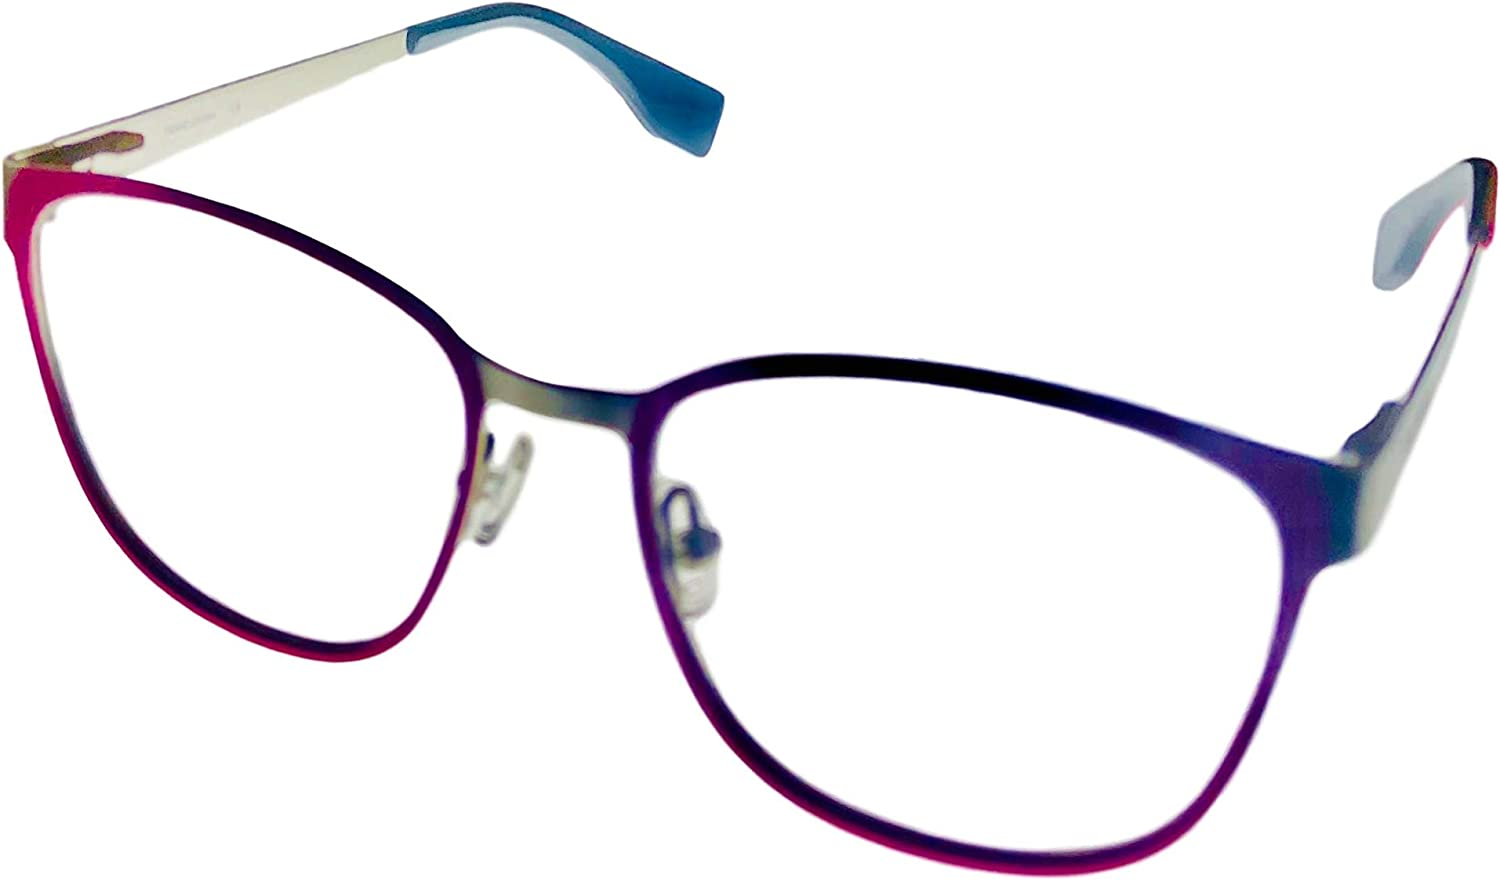 Converse Womens Max 86% OFF Soft Square Metal Eyewear 52mm Frame A221 Pink S Tulsa Mall